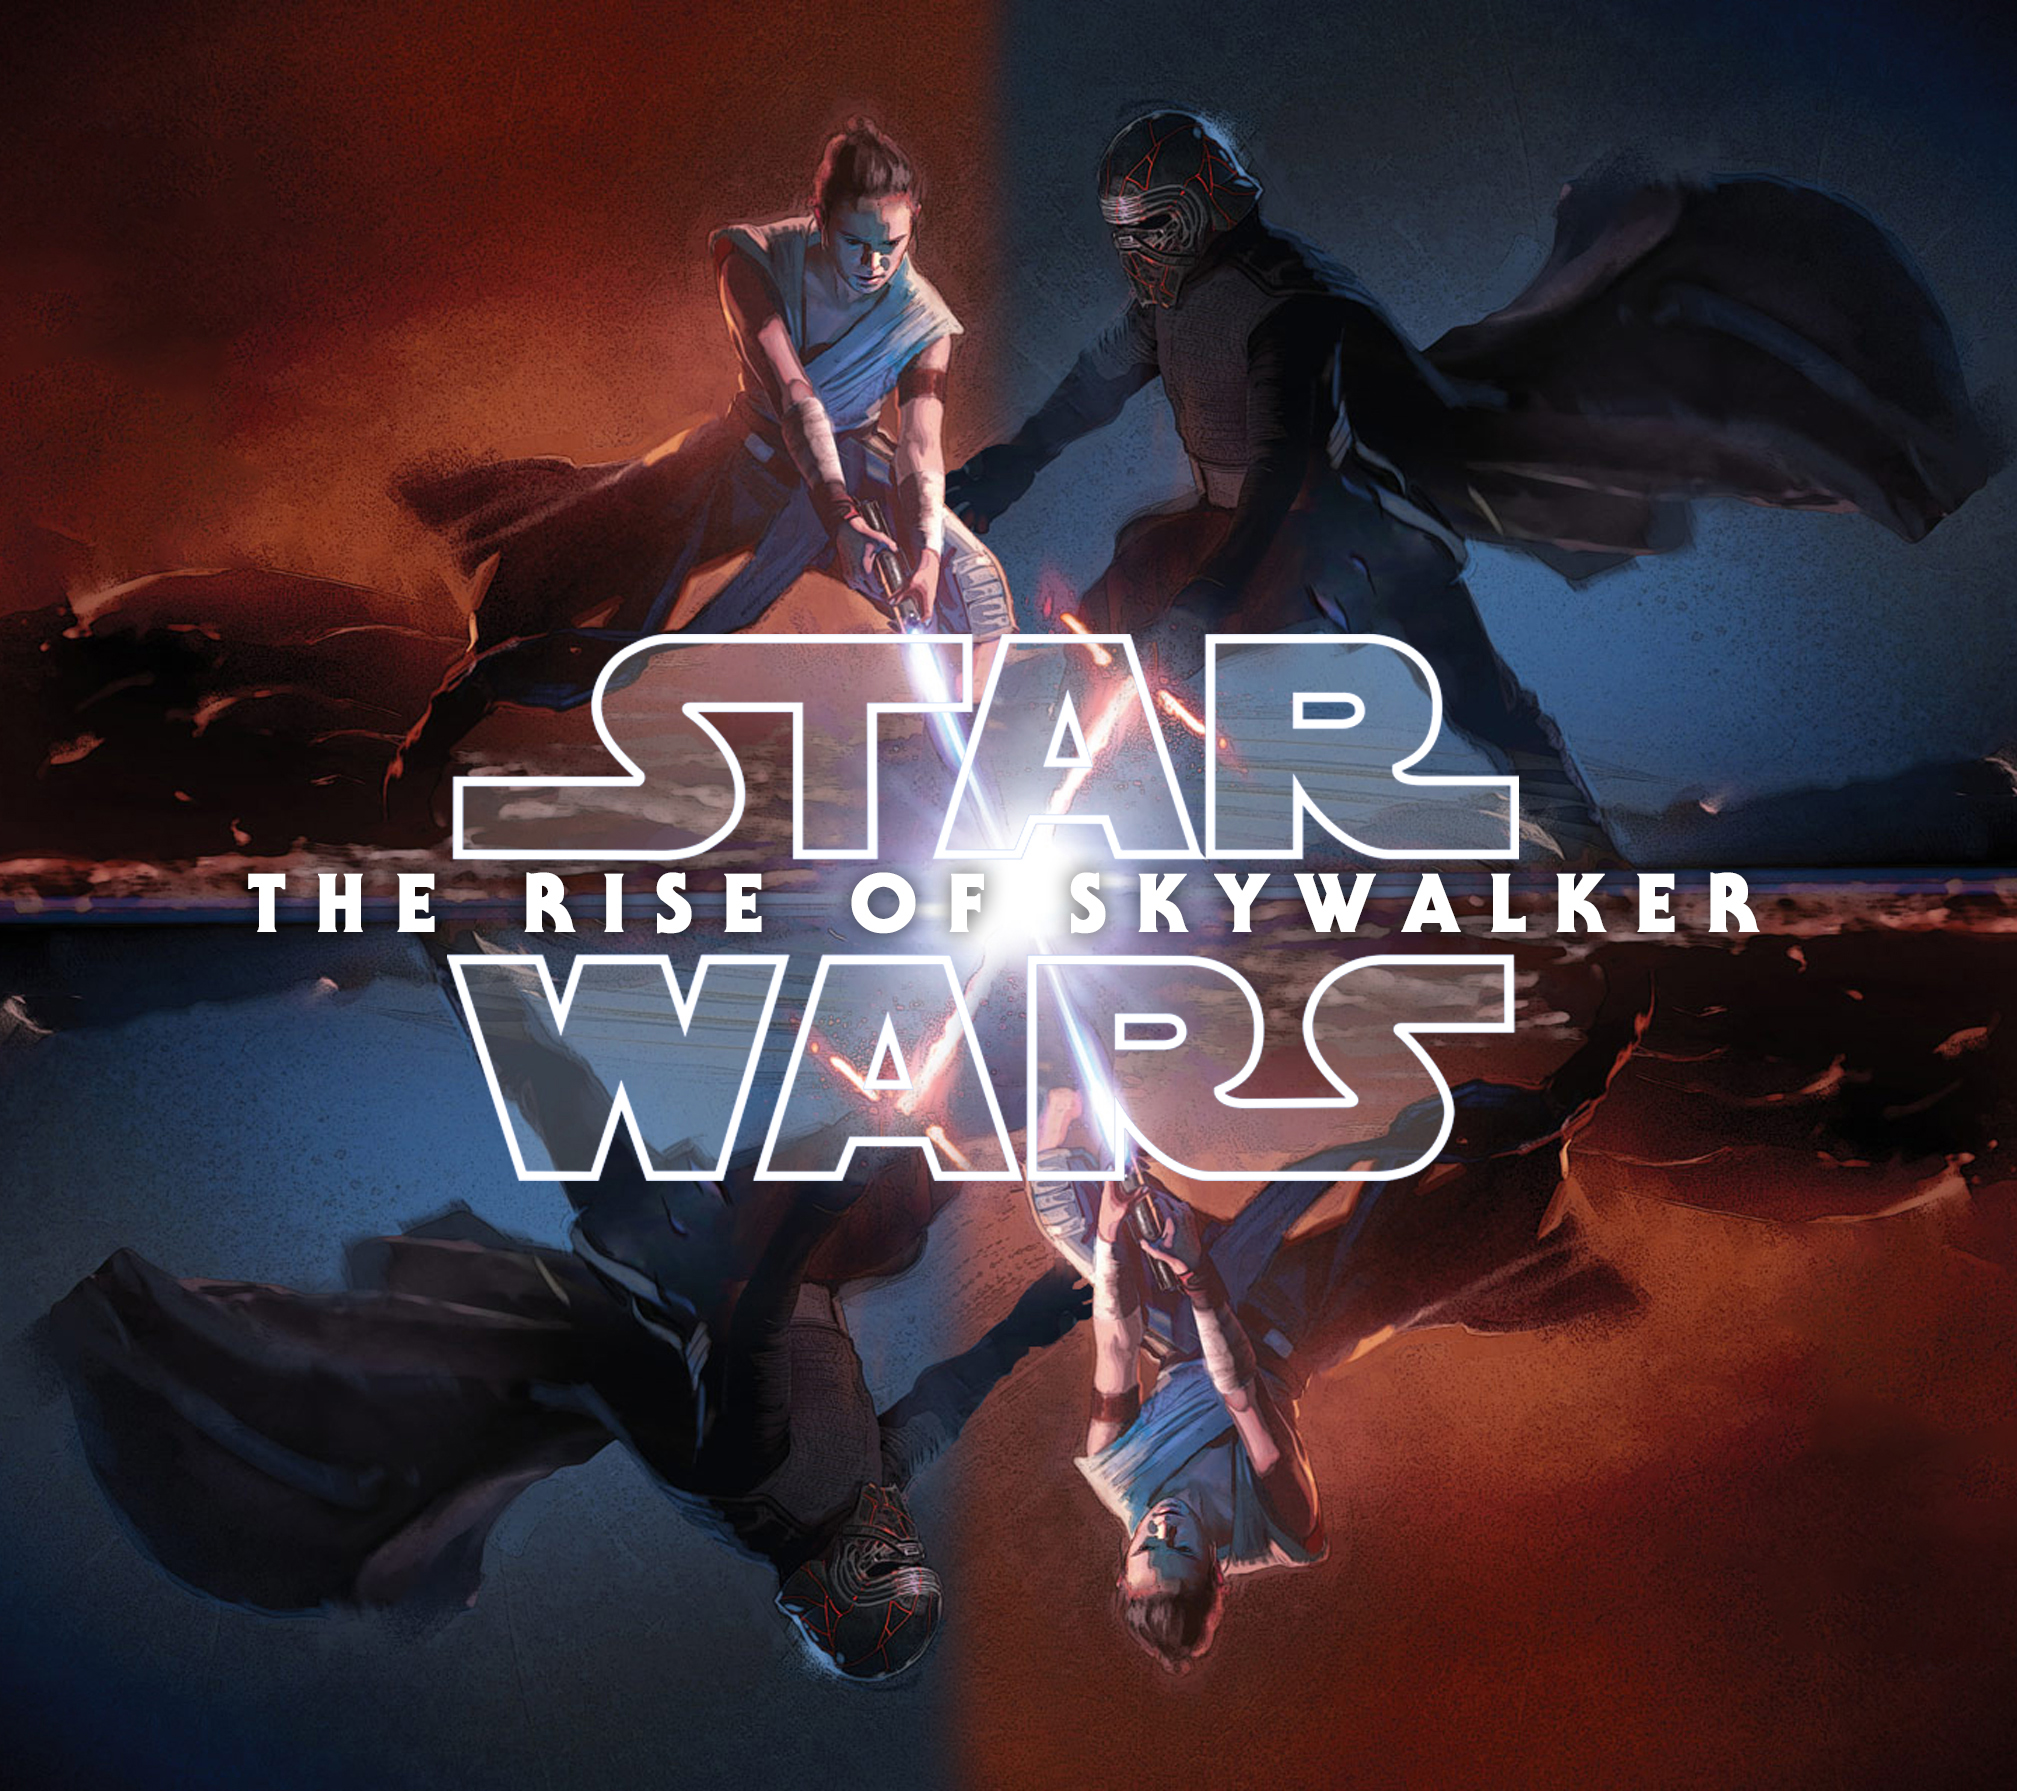 Star Wars The Rise Of Skywalker Poster Geek Carl